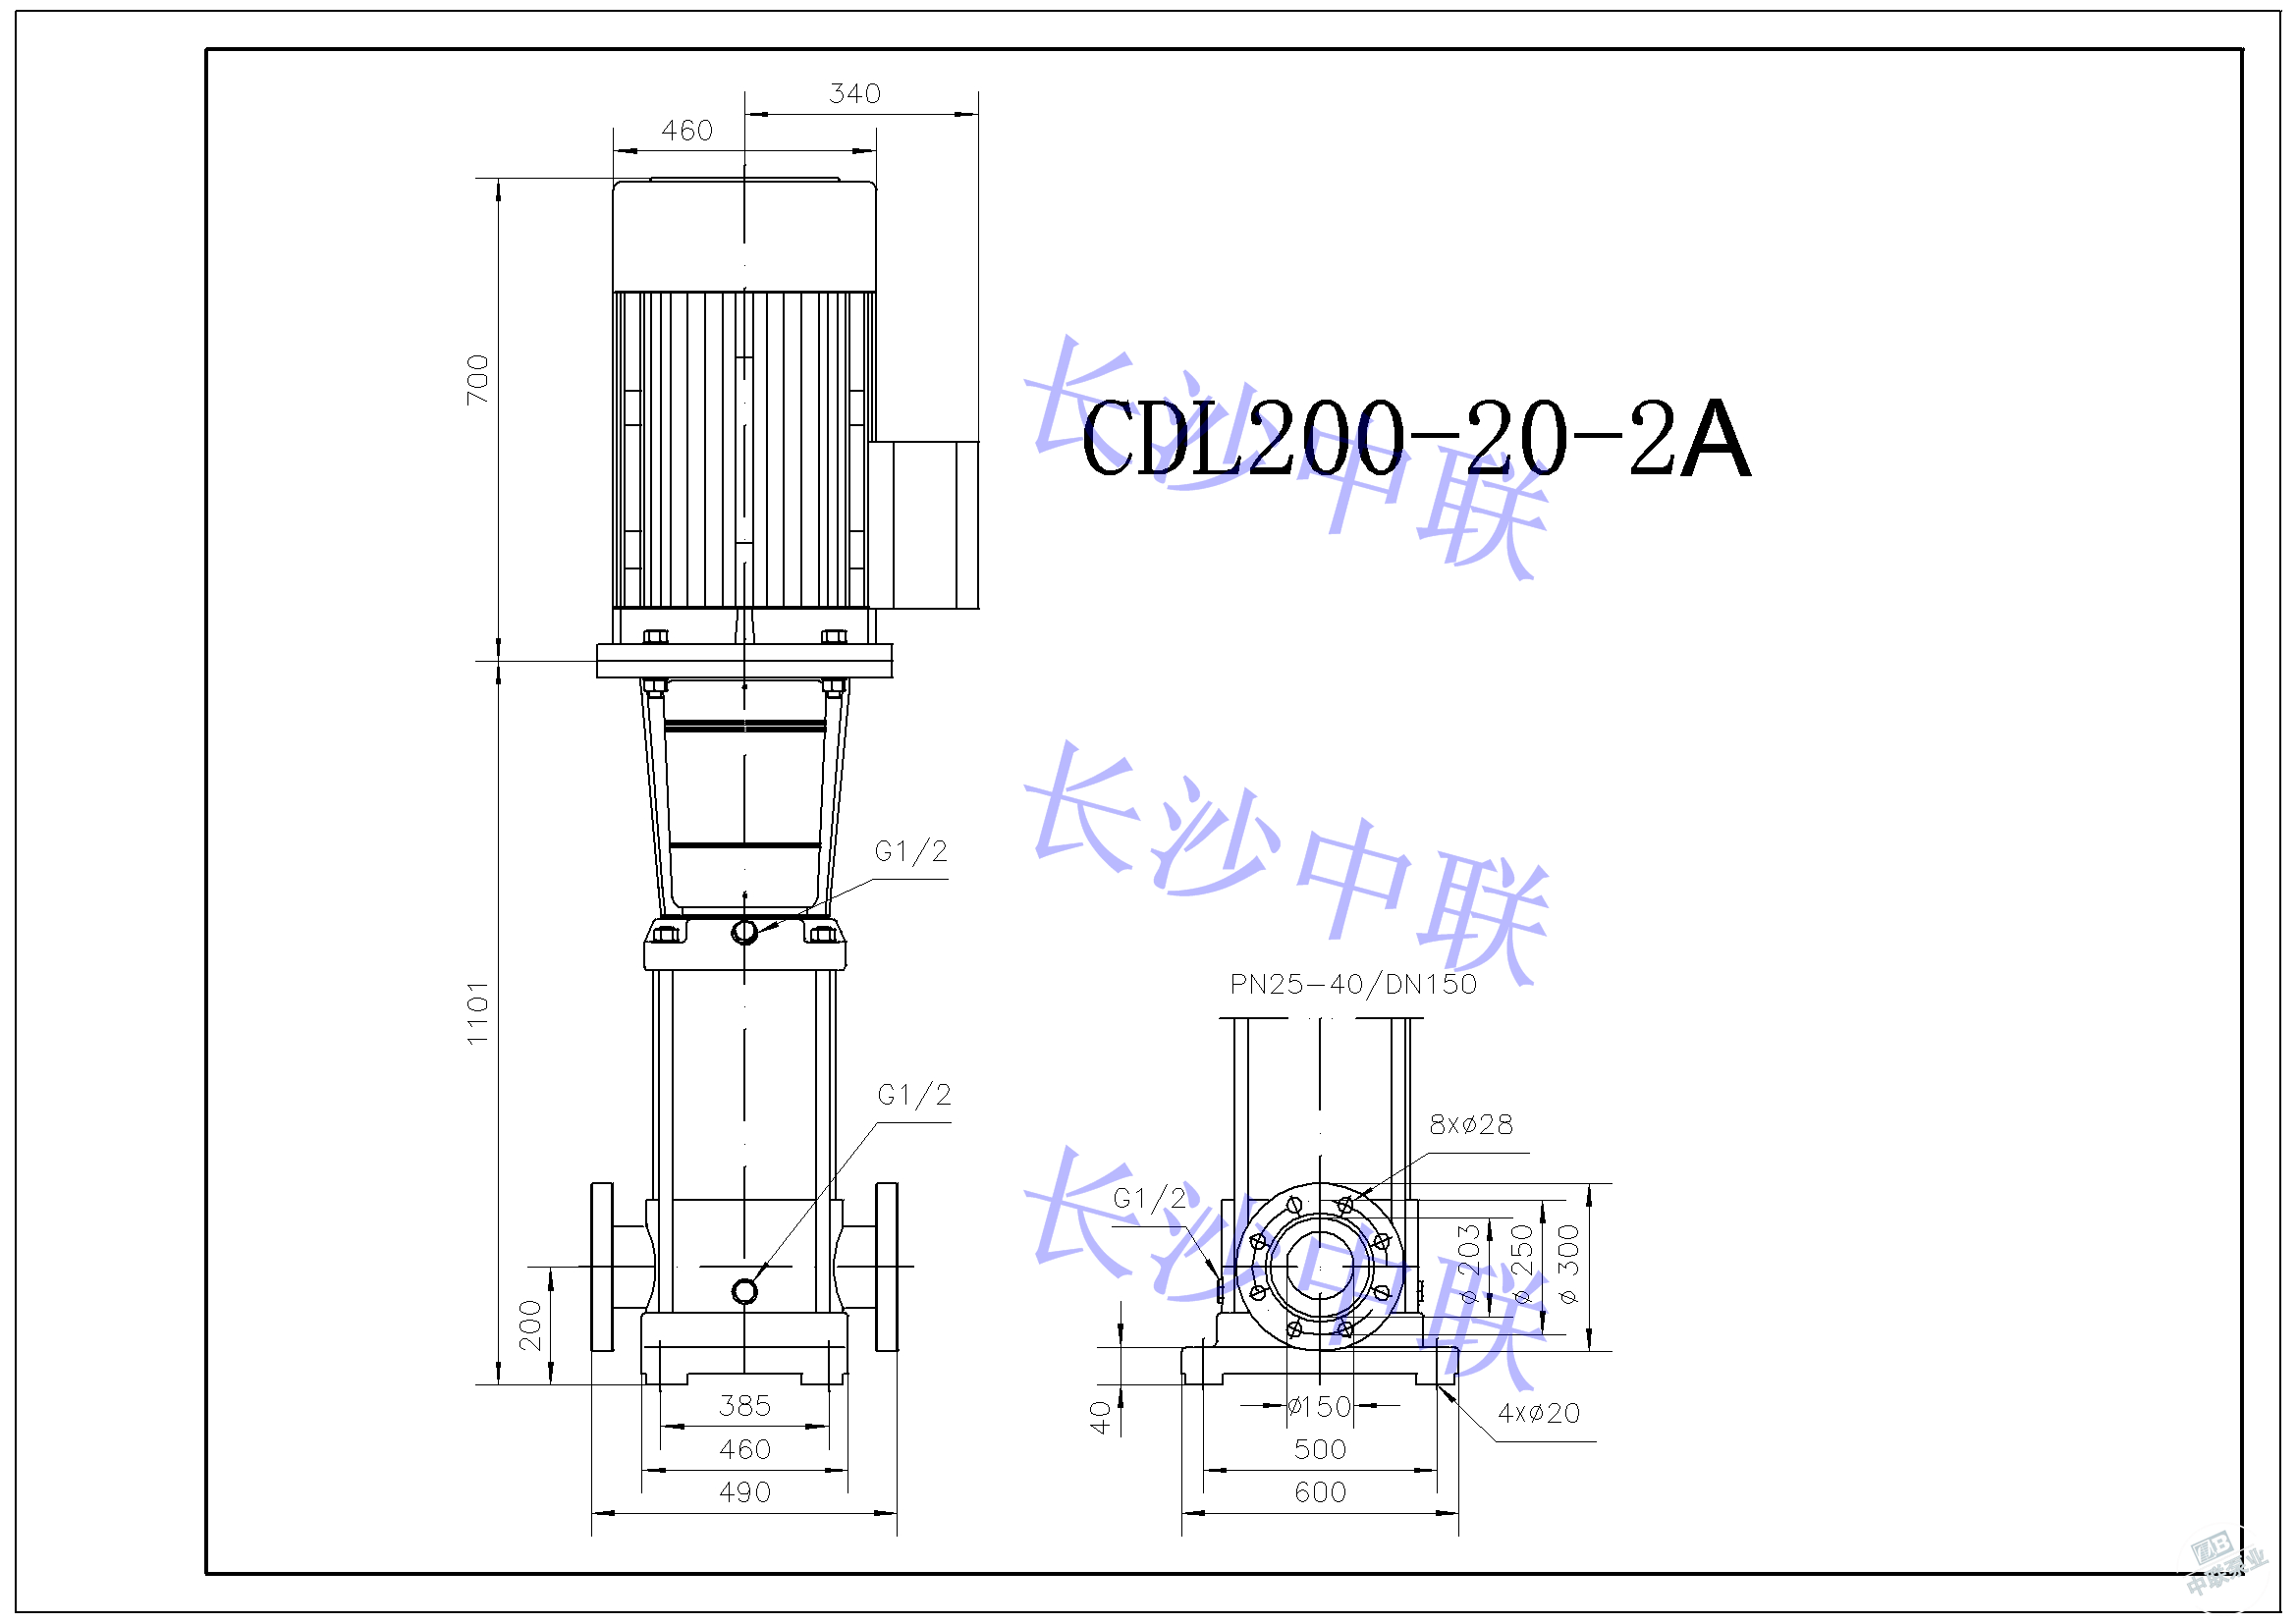 CDL200-20-2A multi-stage pump installation drawing